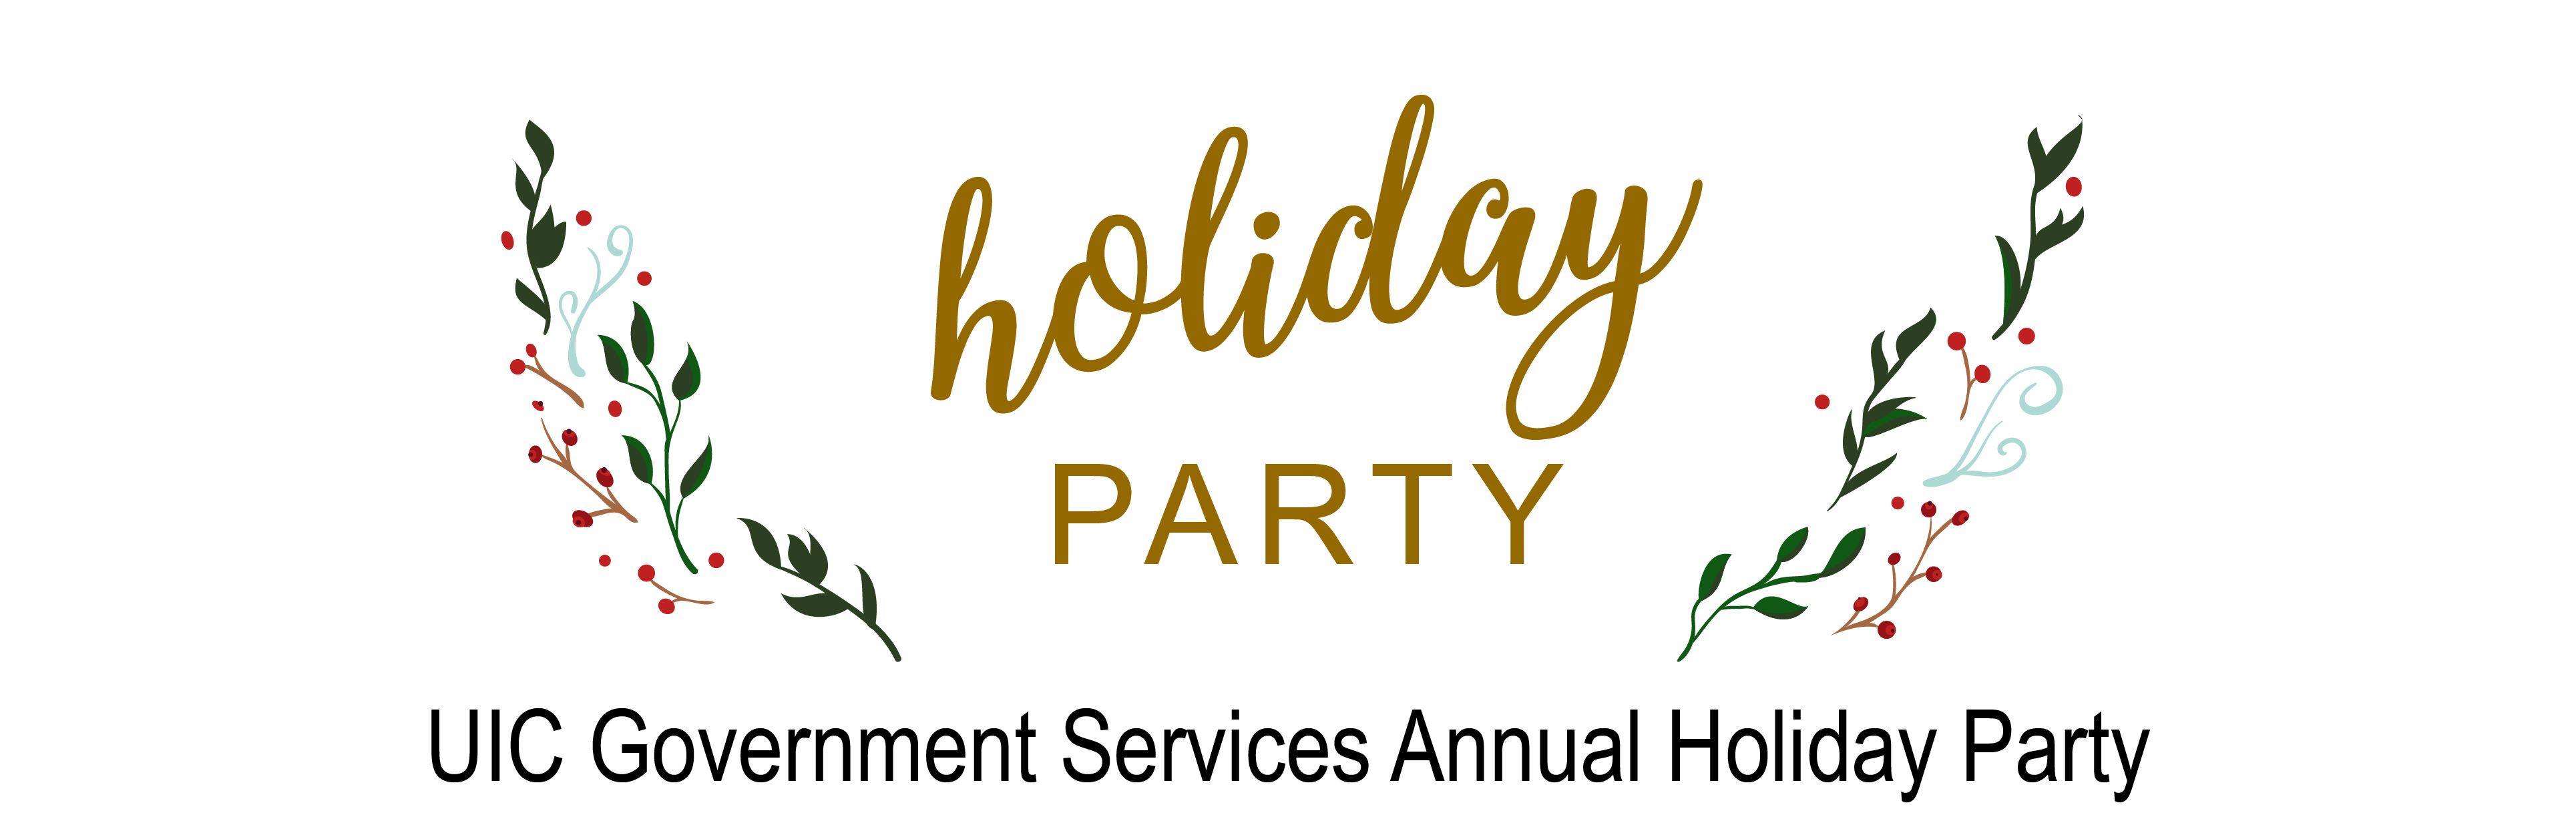 UICGS 2017 Holiday Party